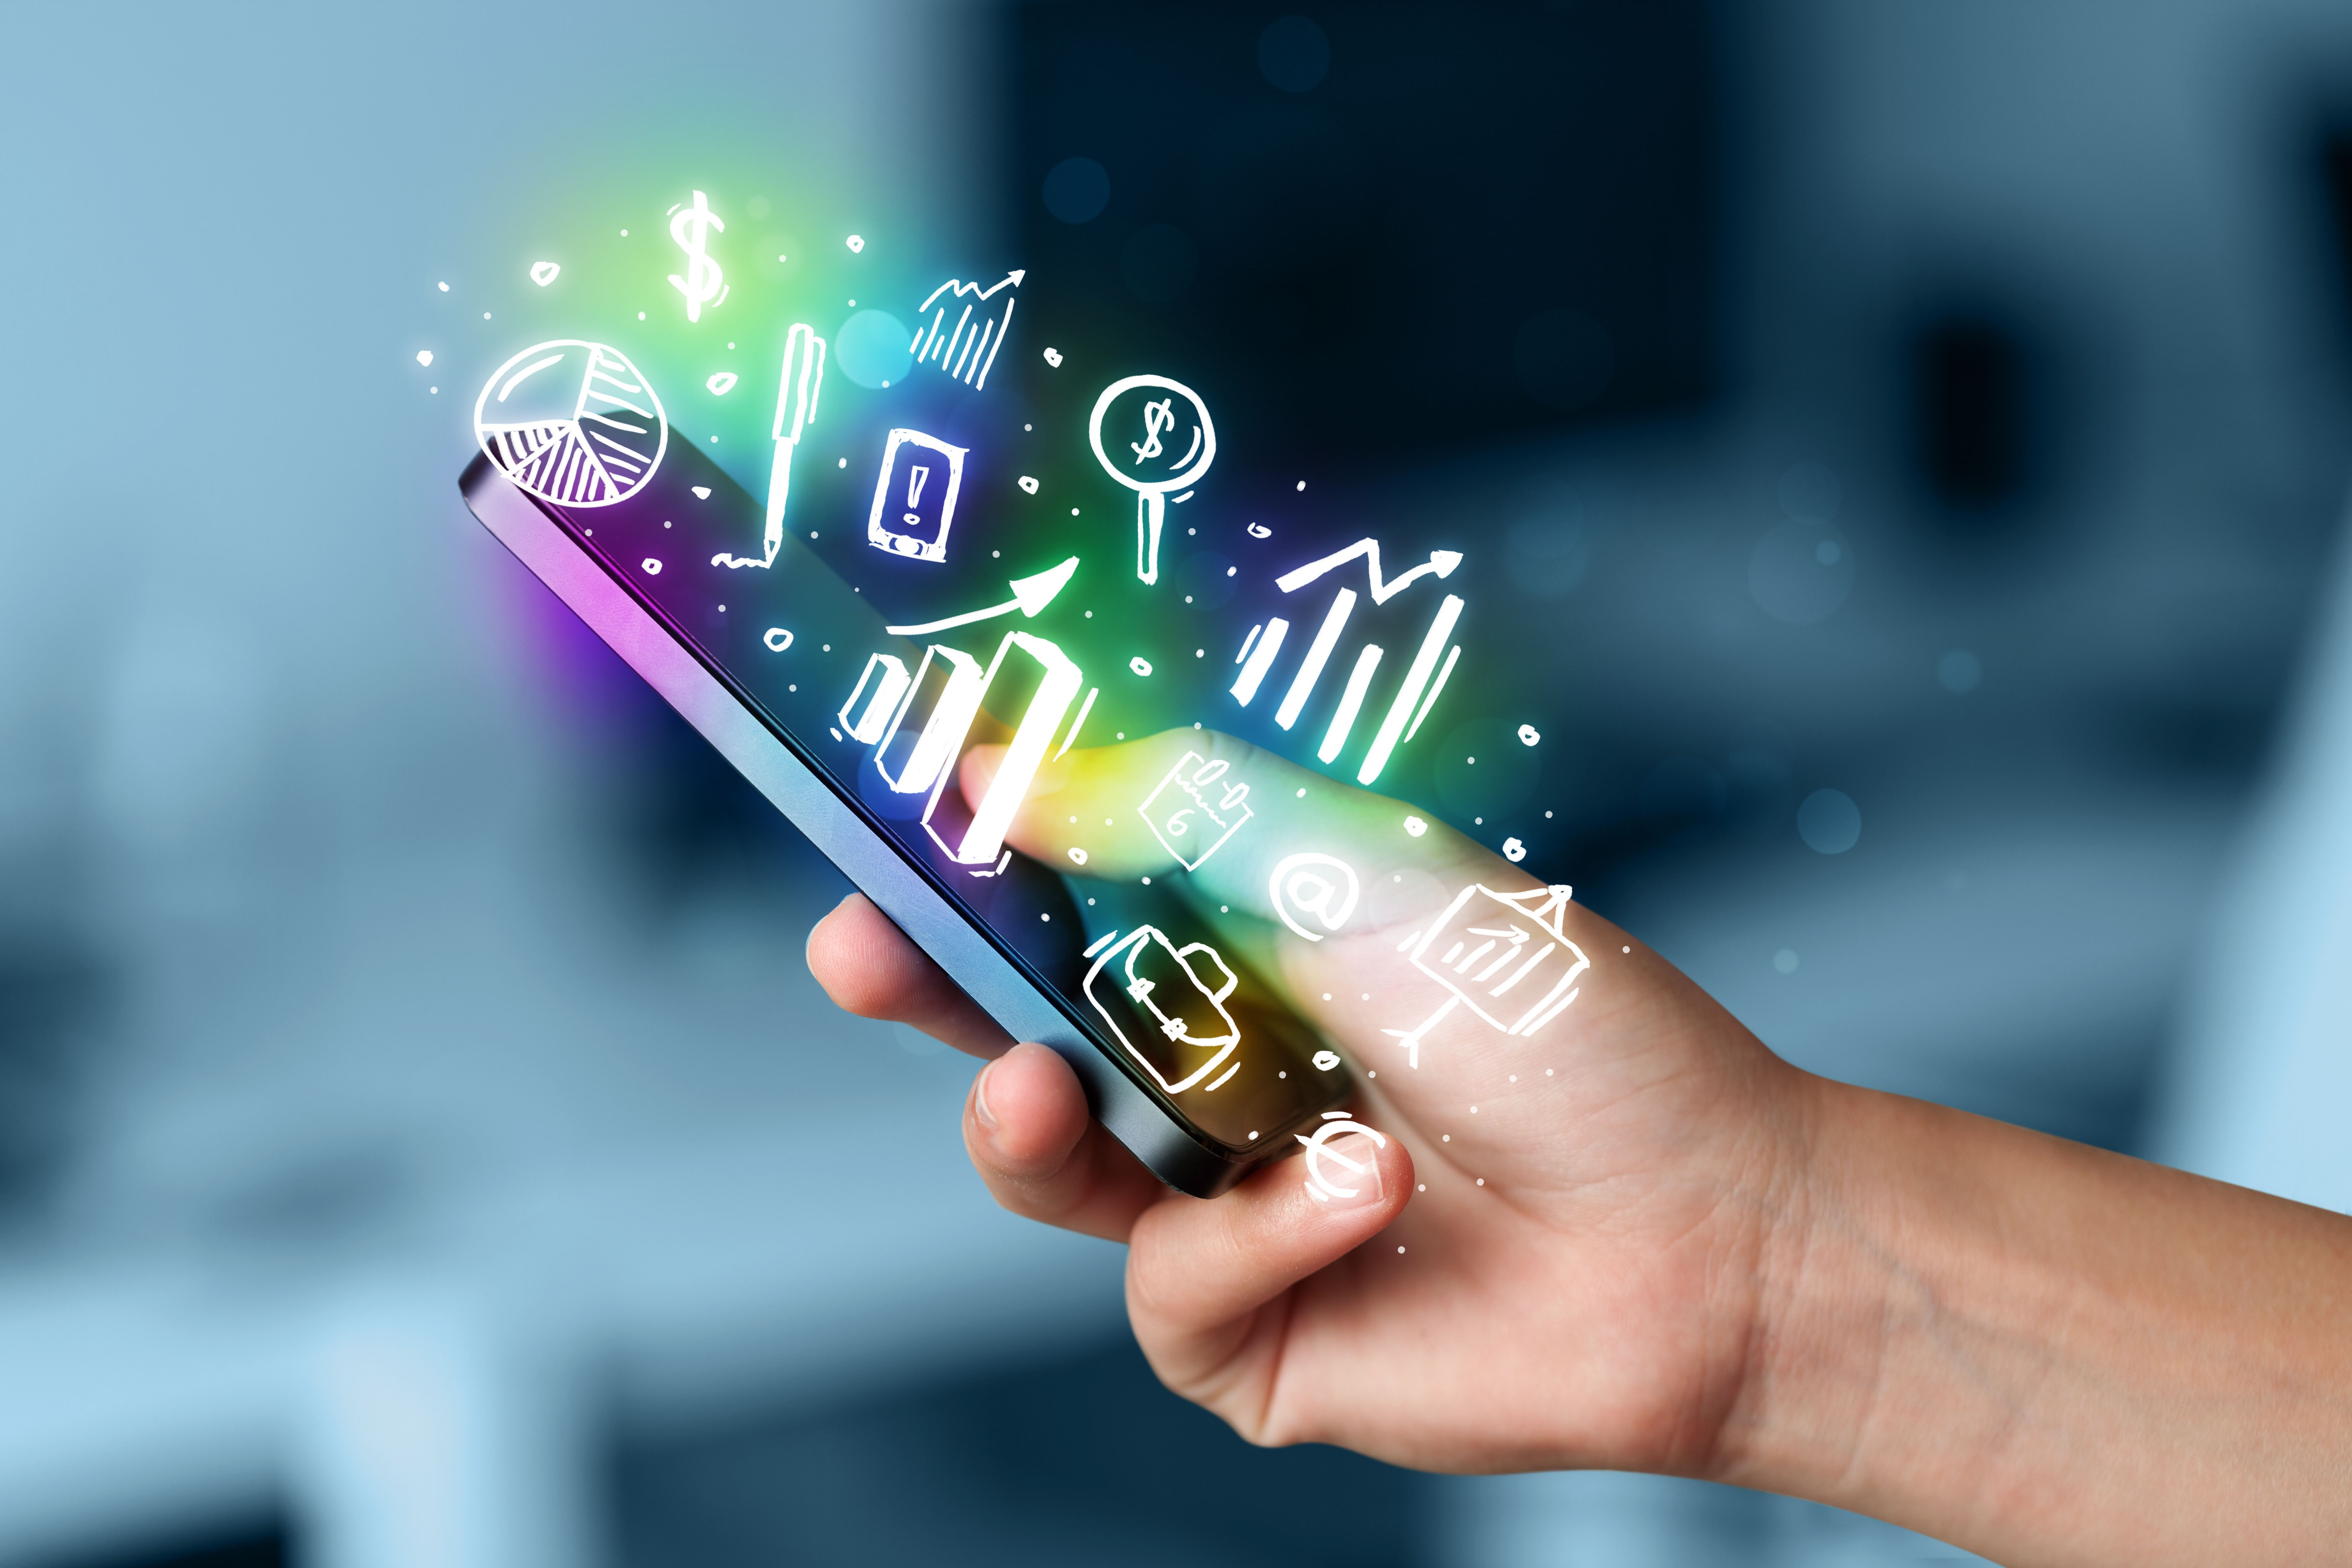 5g the future of mobile technology Telecom's future depends on 5g wireless technology to help converge wireless and wireline but because mobile users move both geographically and from cell to.